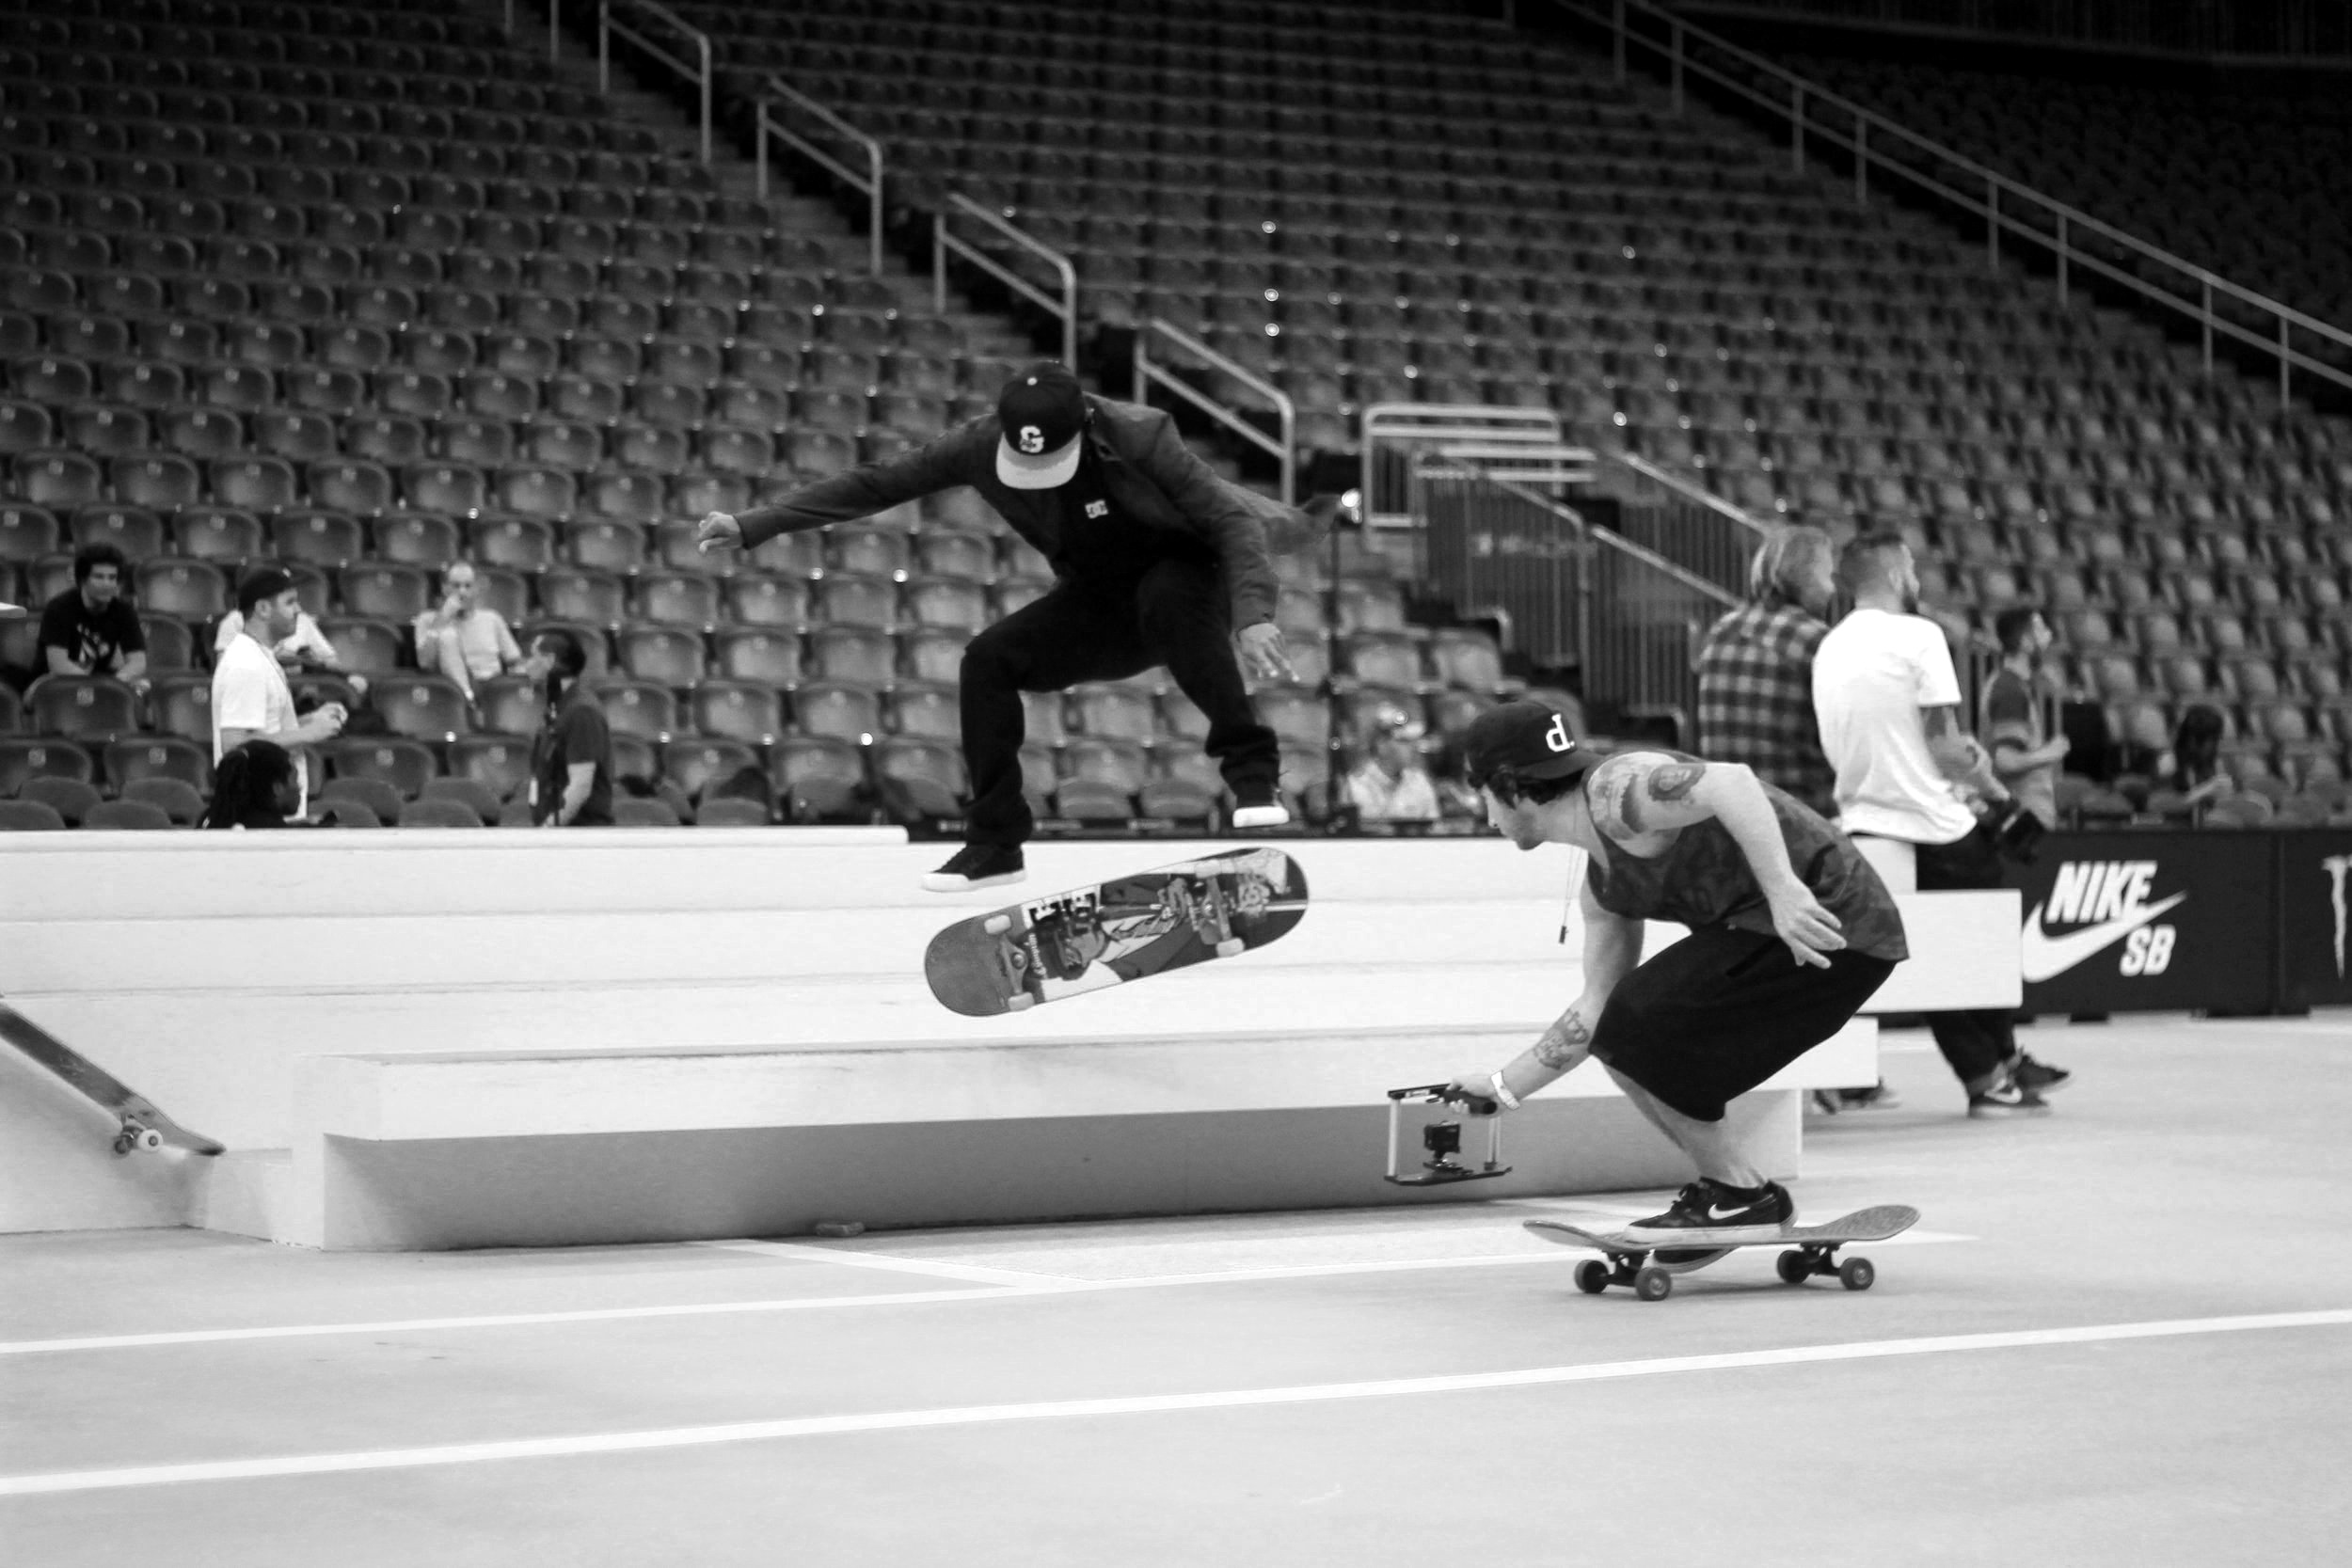 Studio_Bloq-Nike_SB-Street_League-1.jpg